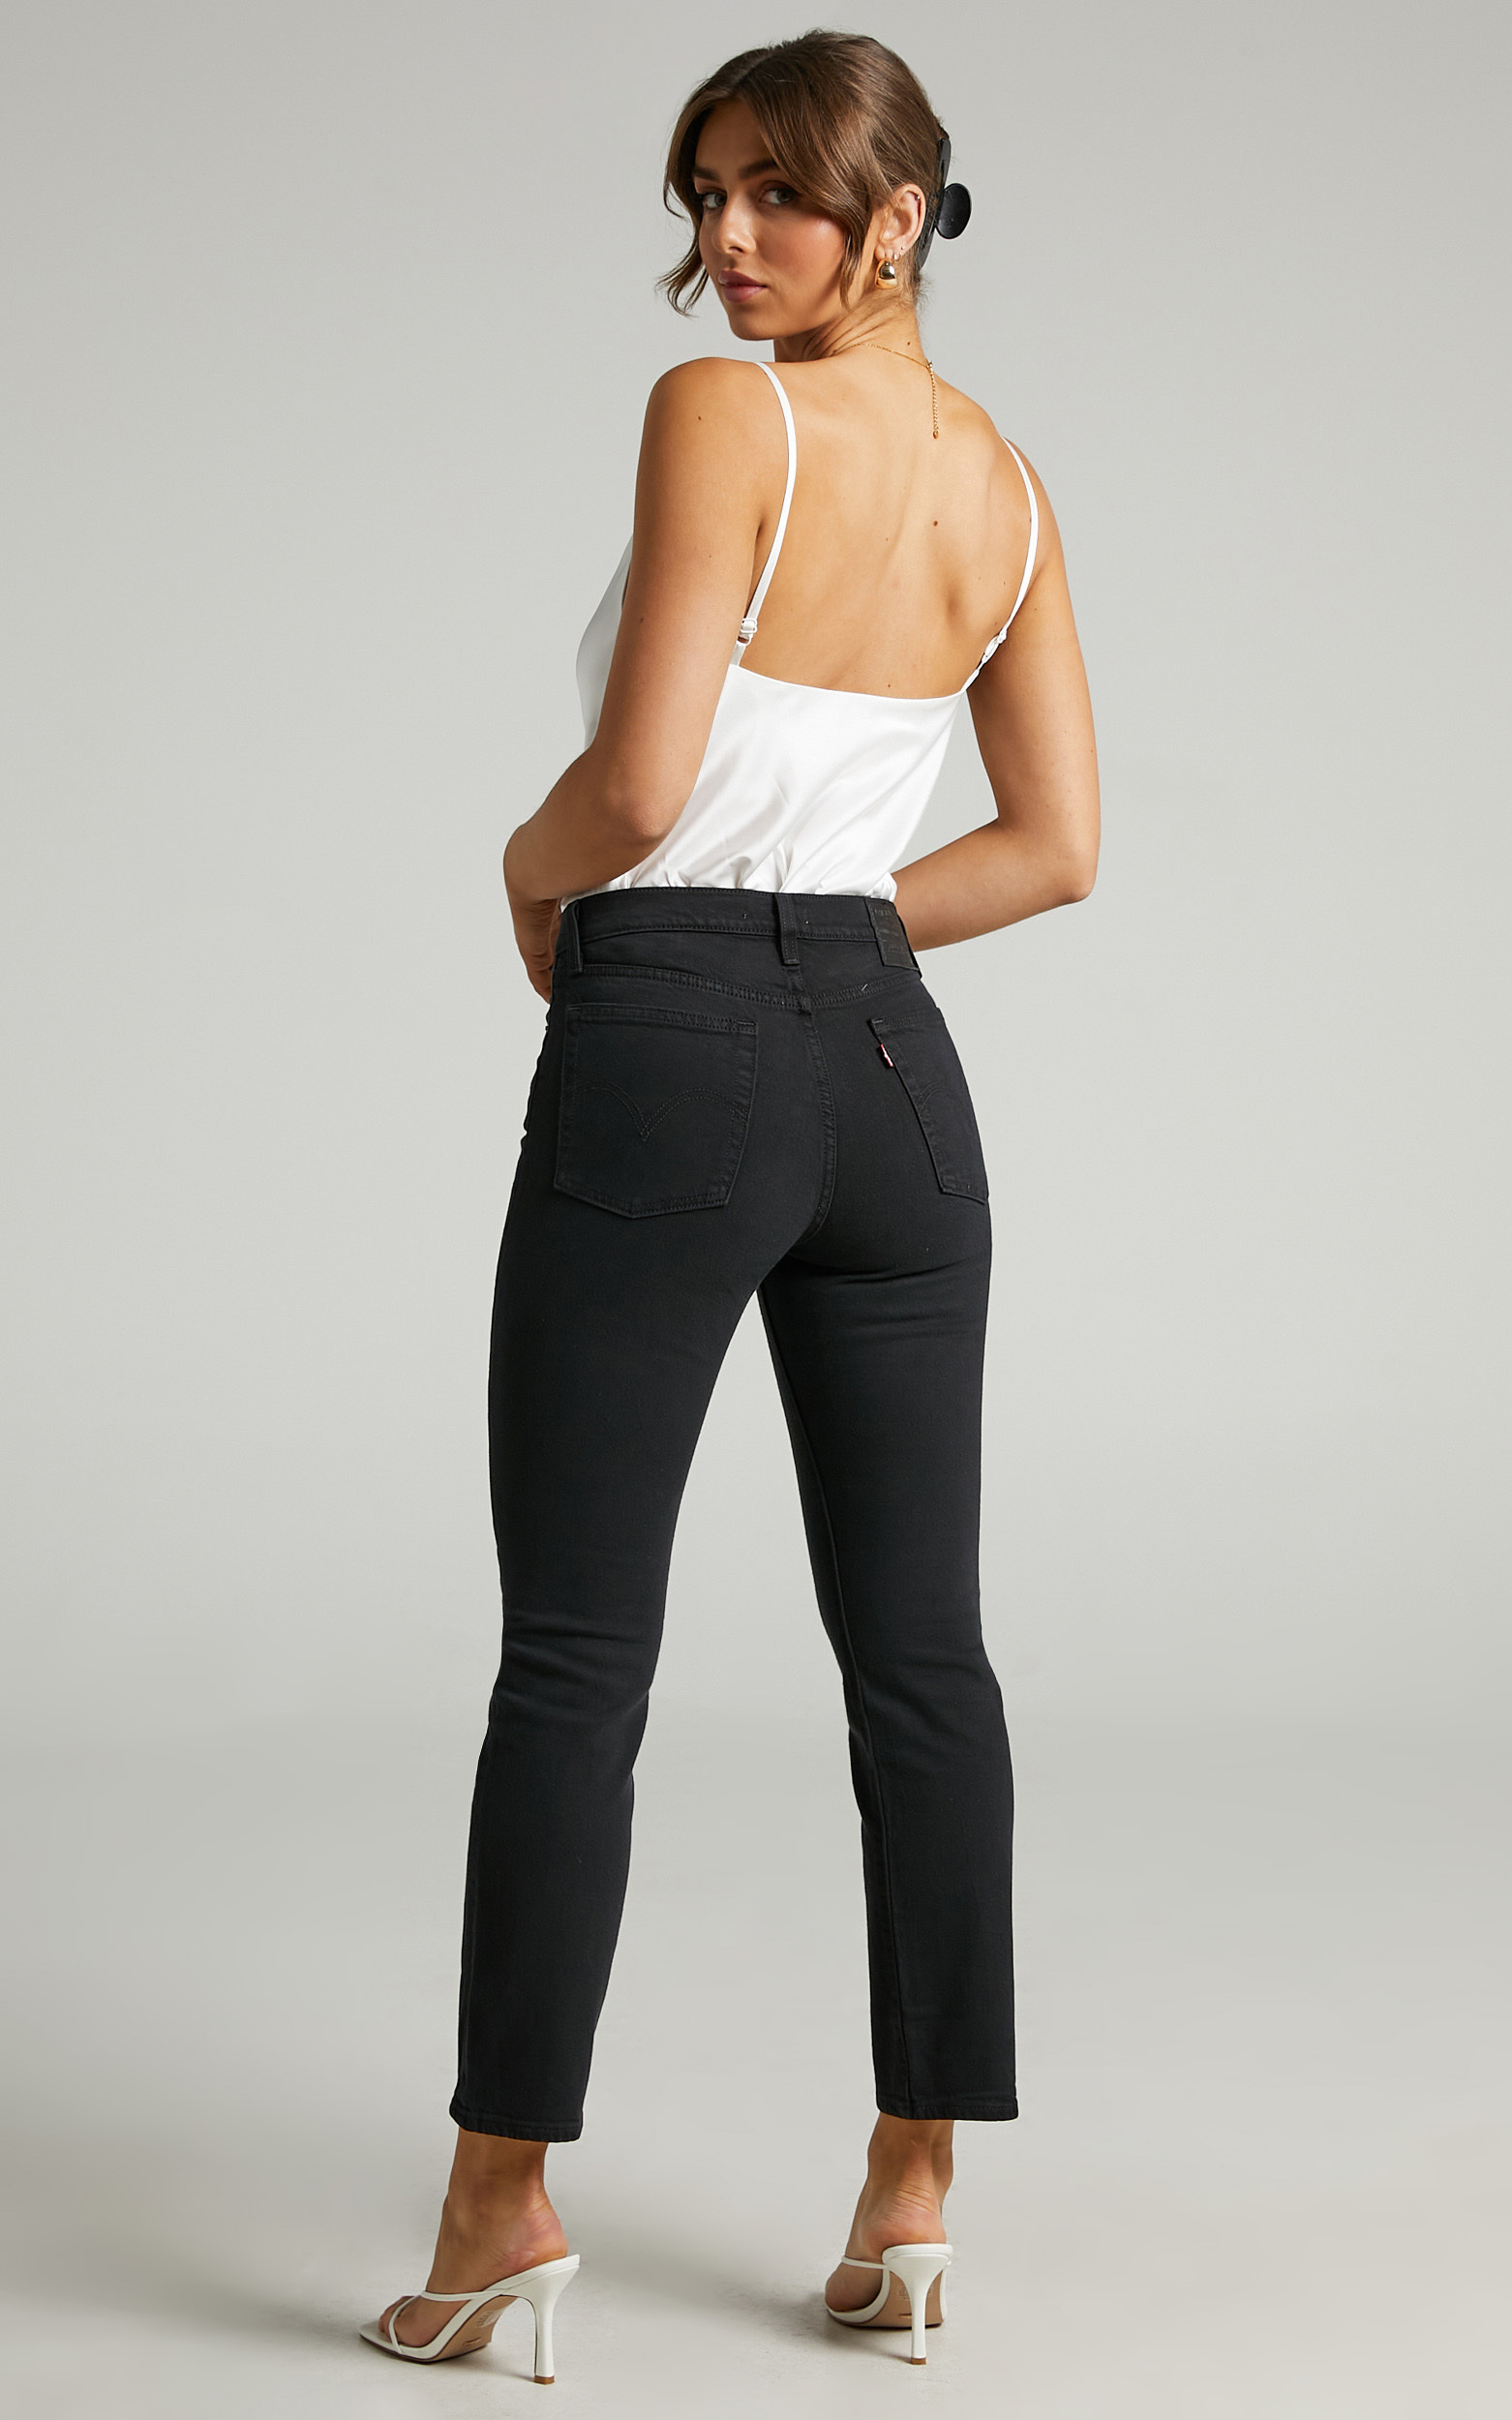 Levis - Wedgie Straight Jean in Black Sprout - 06, BLK1, hi-res image number null